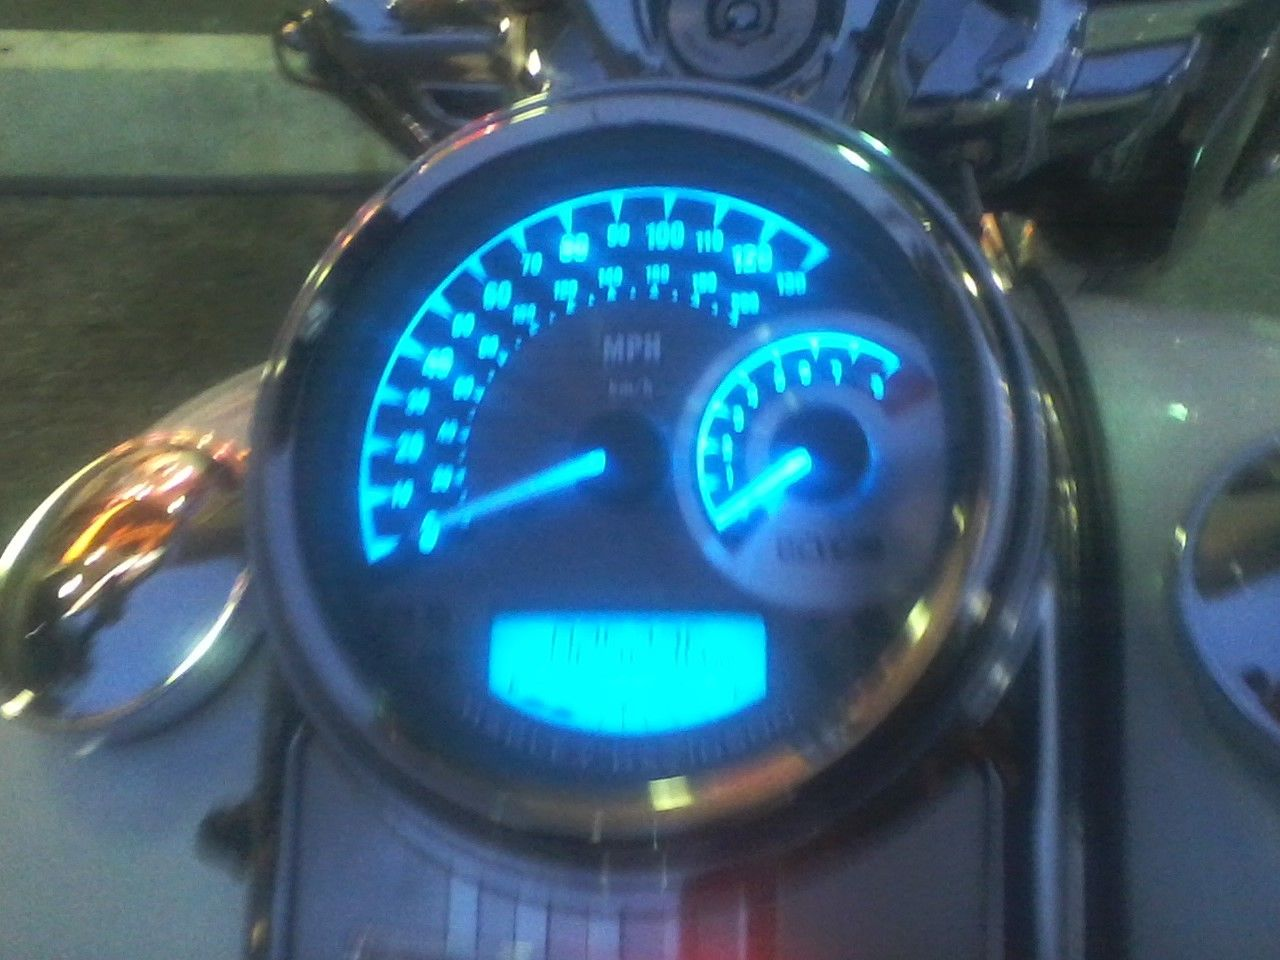 Eagle Tach Wiring Automotive Diagram Harley Road King 2012 U20ac White Hot Pearl 7 000 00 In Tech Wireless Router Password Change Mgb Tachometer